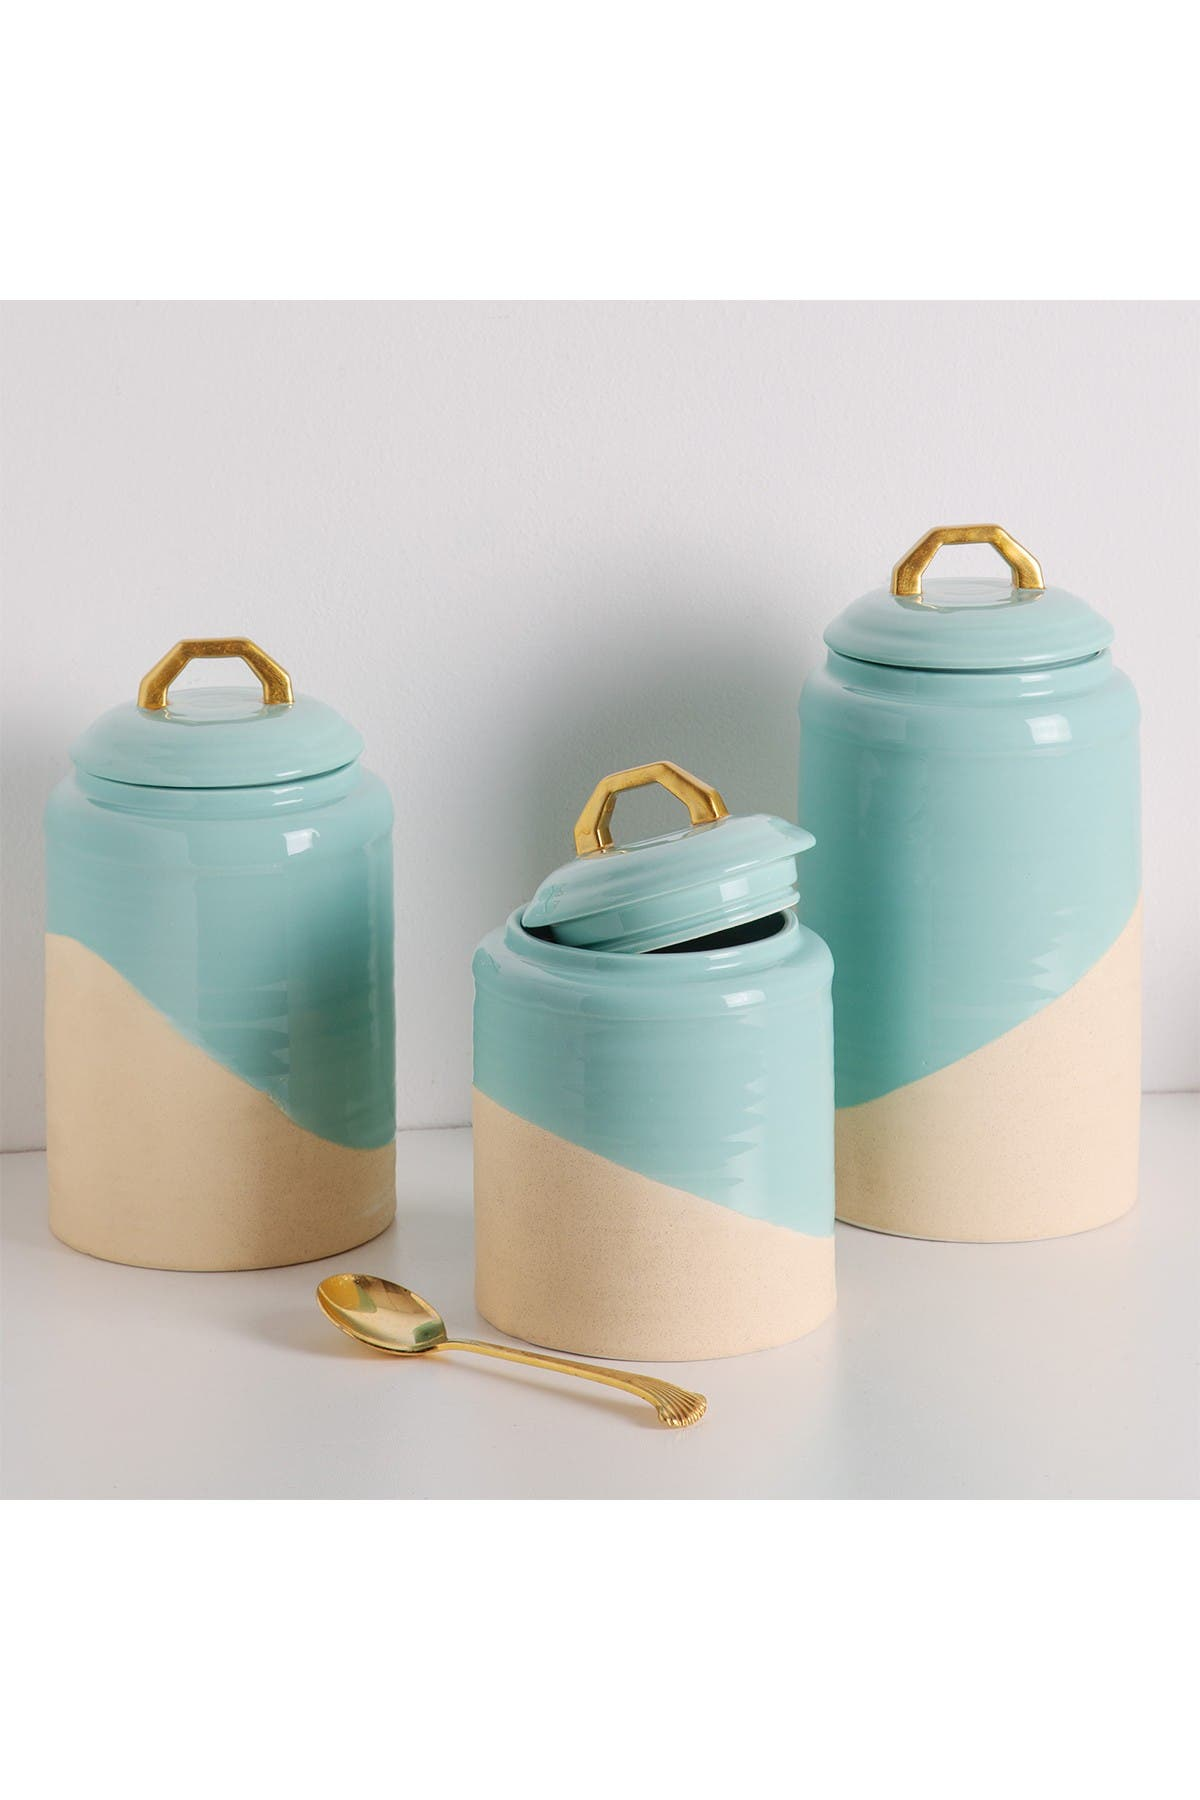 Image of Home Essentials and Beyond 58.8 oz. 2-Tone Turquoise Canister